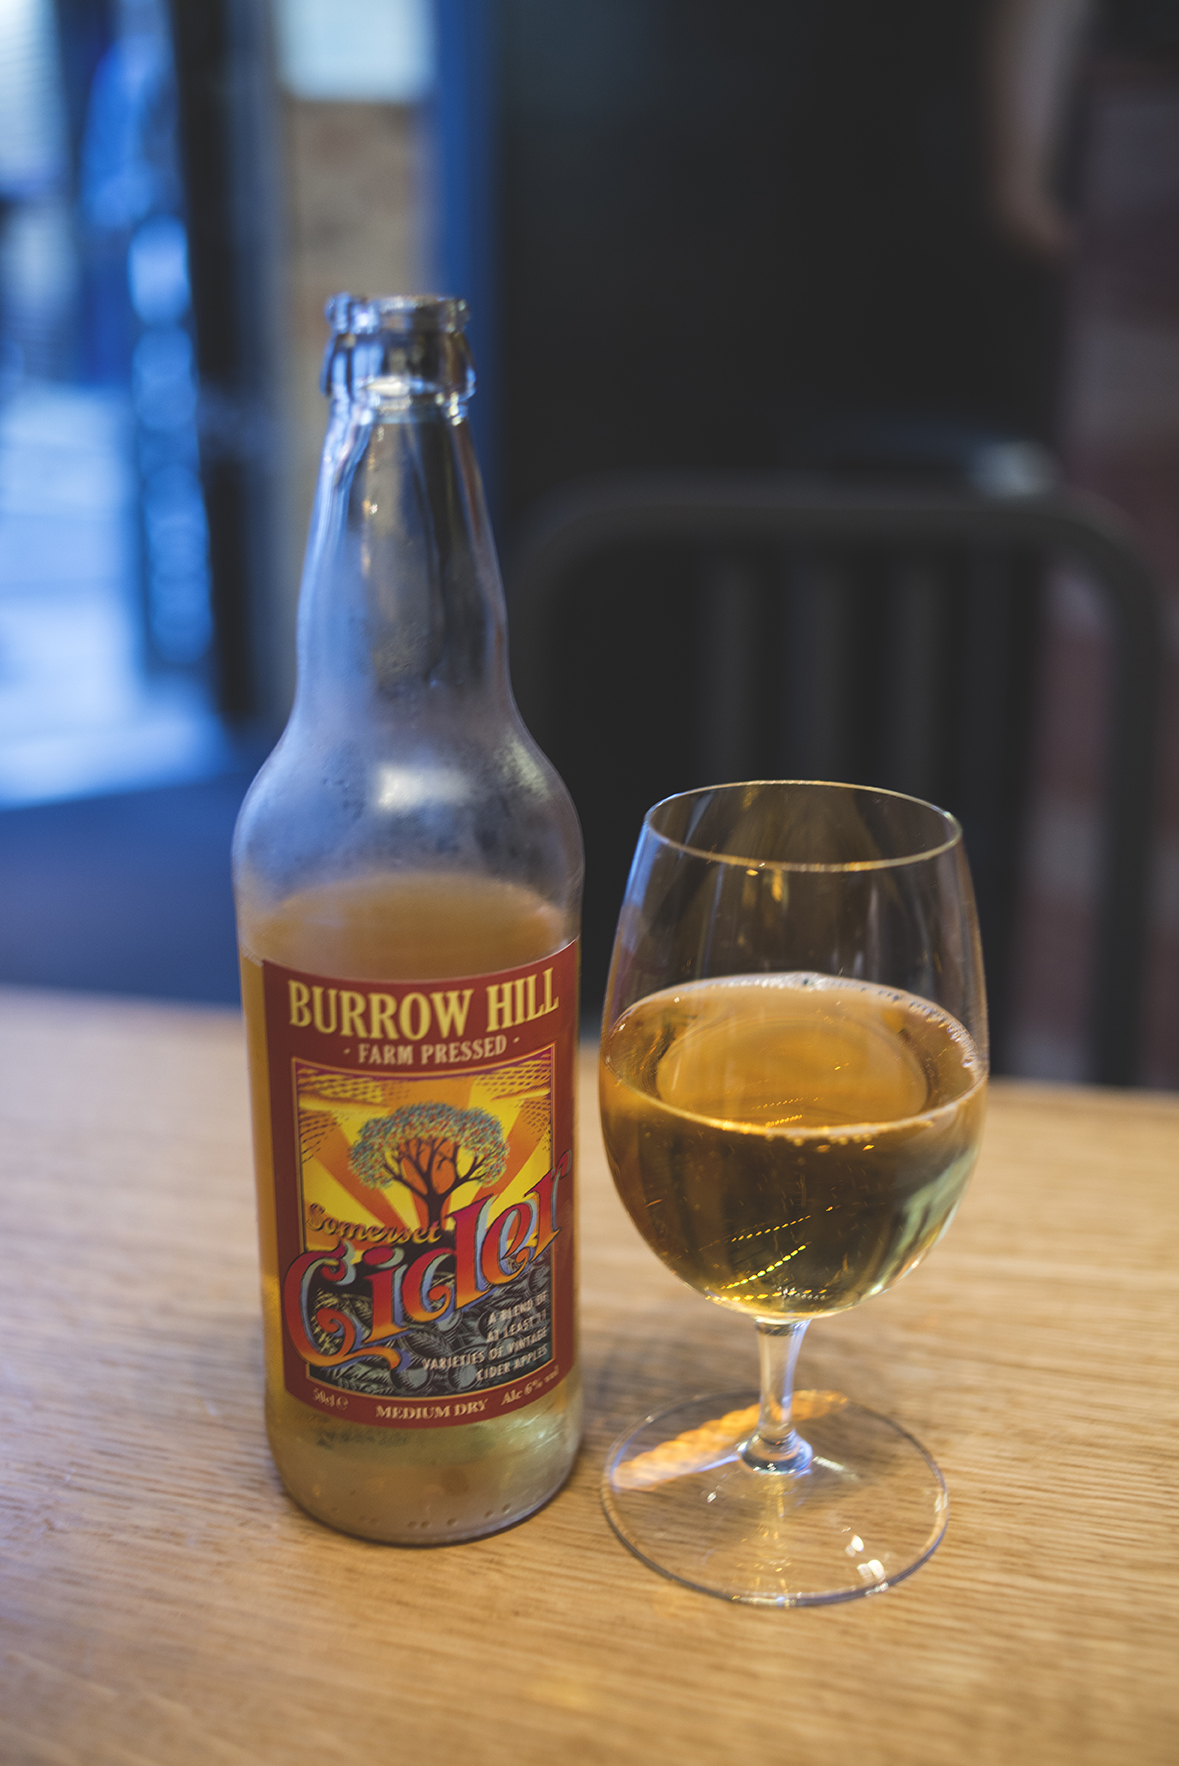 We paired up our roast chicken with seasonal veggies and this Somerset Cider.